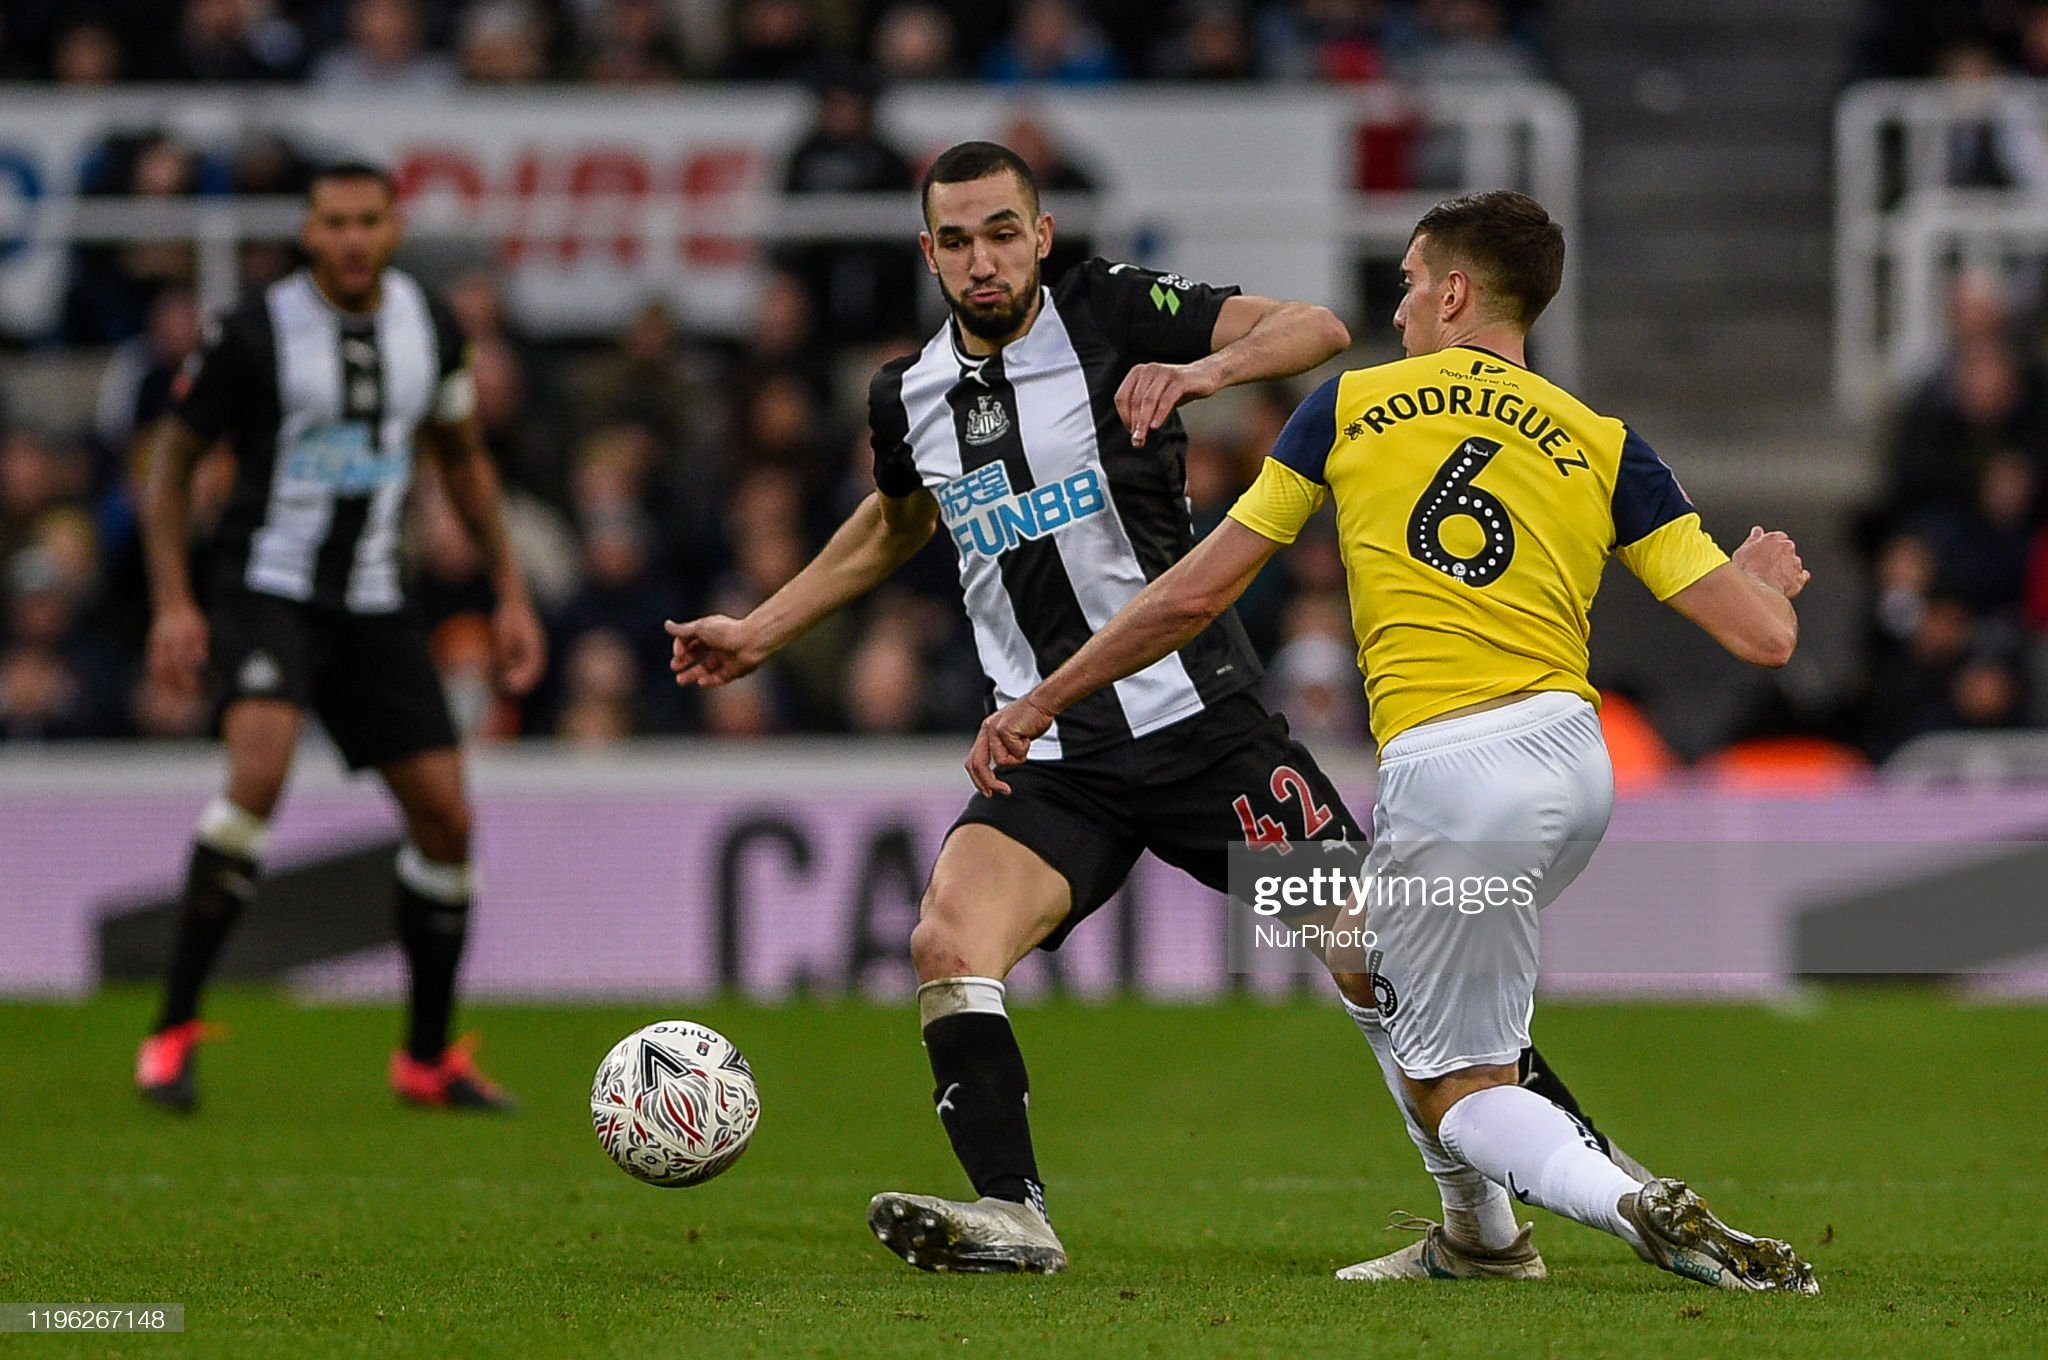 Oxford v Newcastle preview, prediction and odds